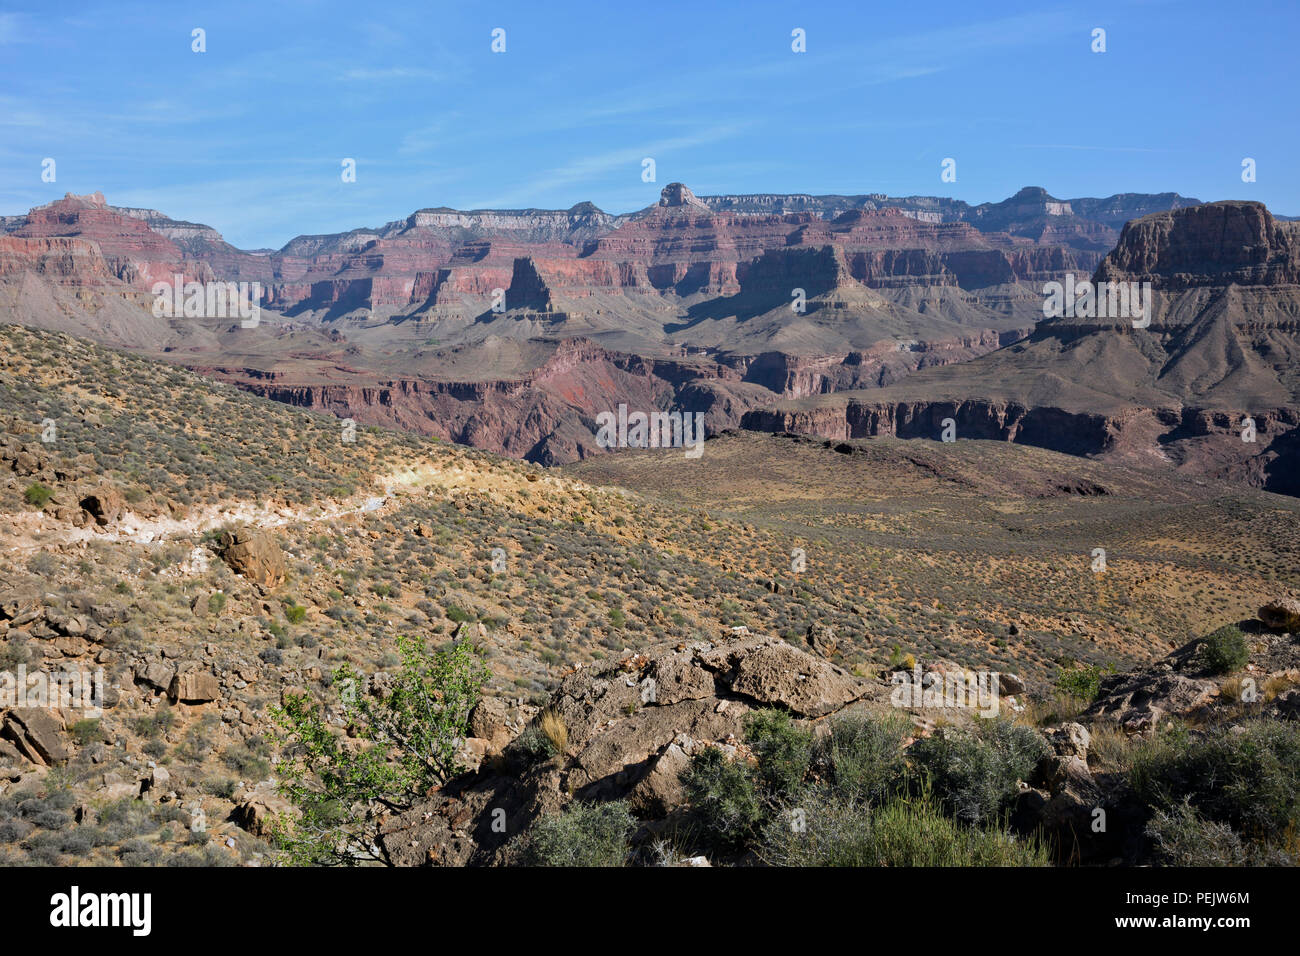 AZ00284-00...ARIZONA - The South Kaibab Trail below Skeleton Point and above the Tonto Trail intersection  in Grand Canyon National Park. - Stock Image